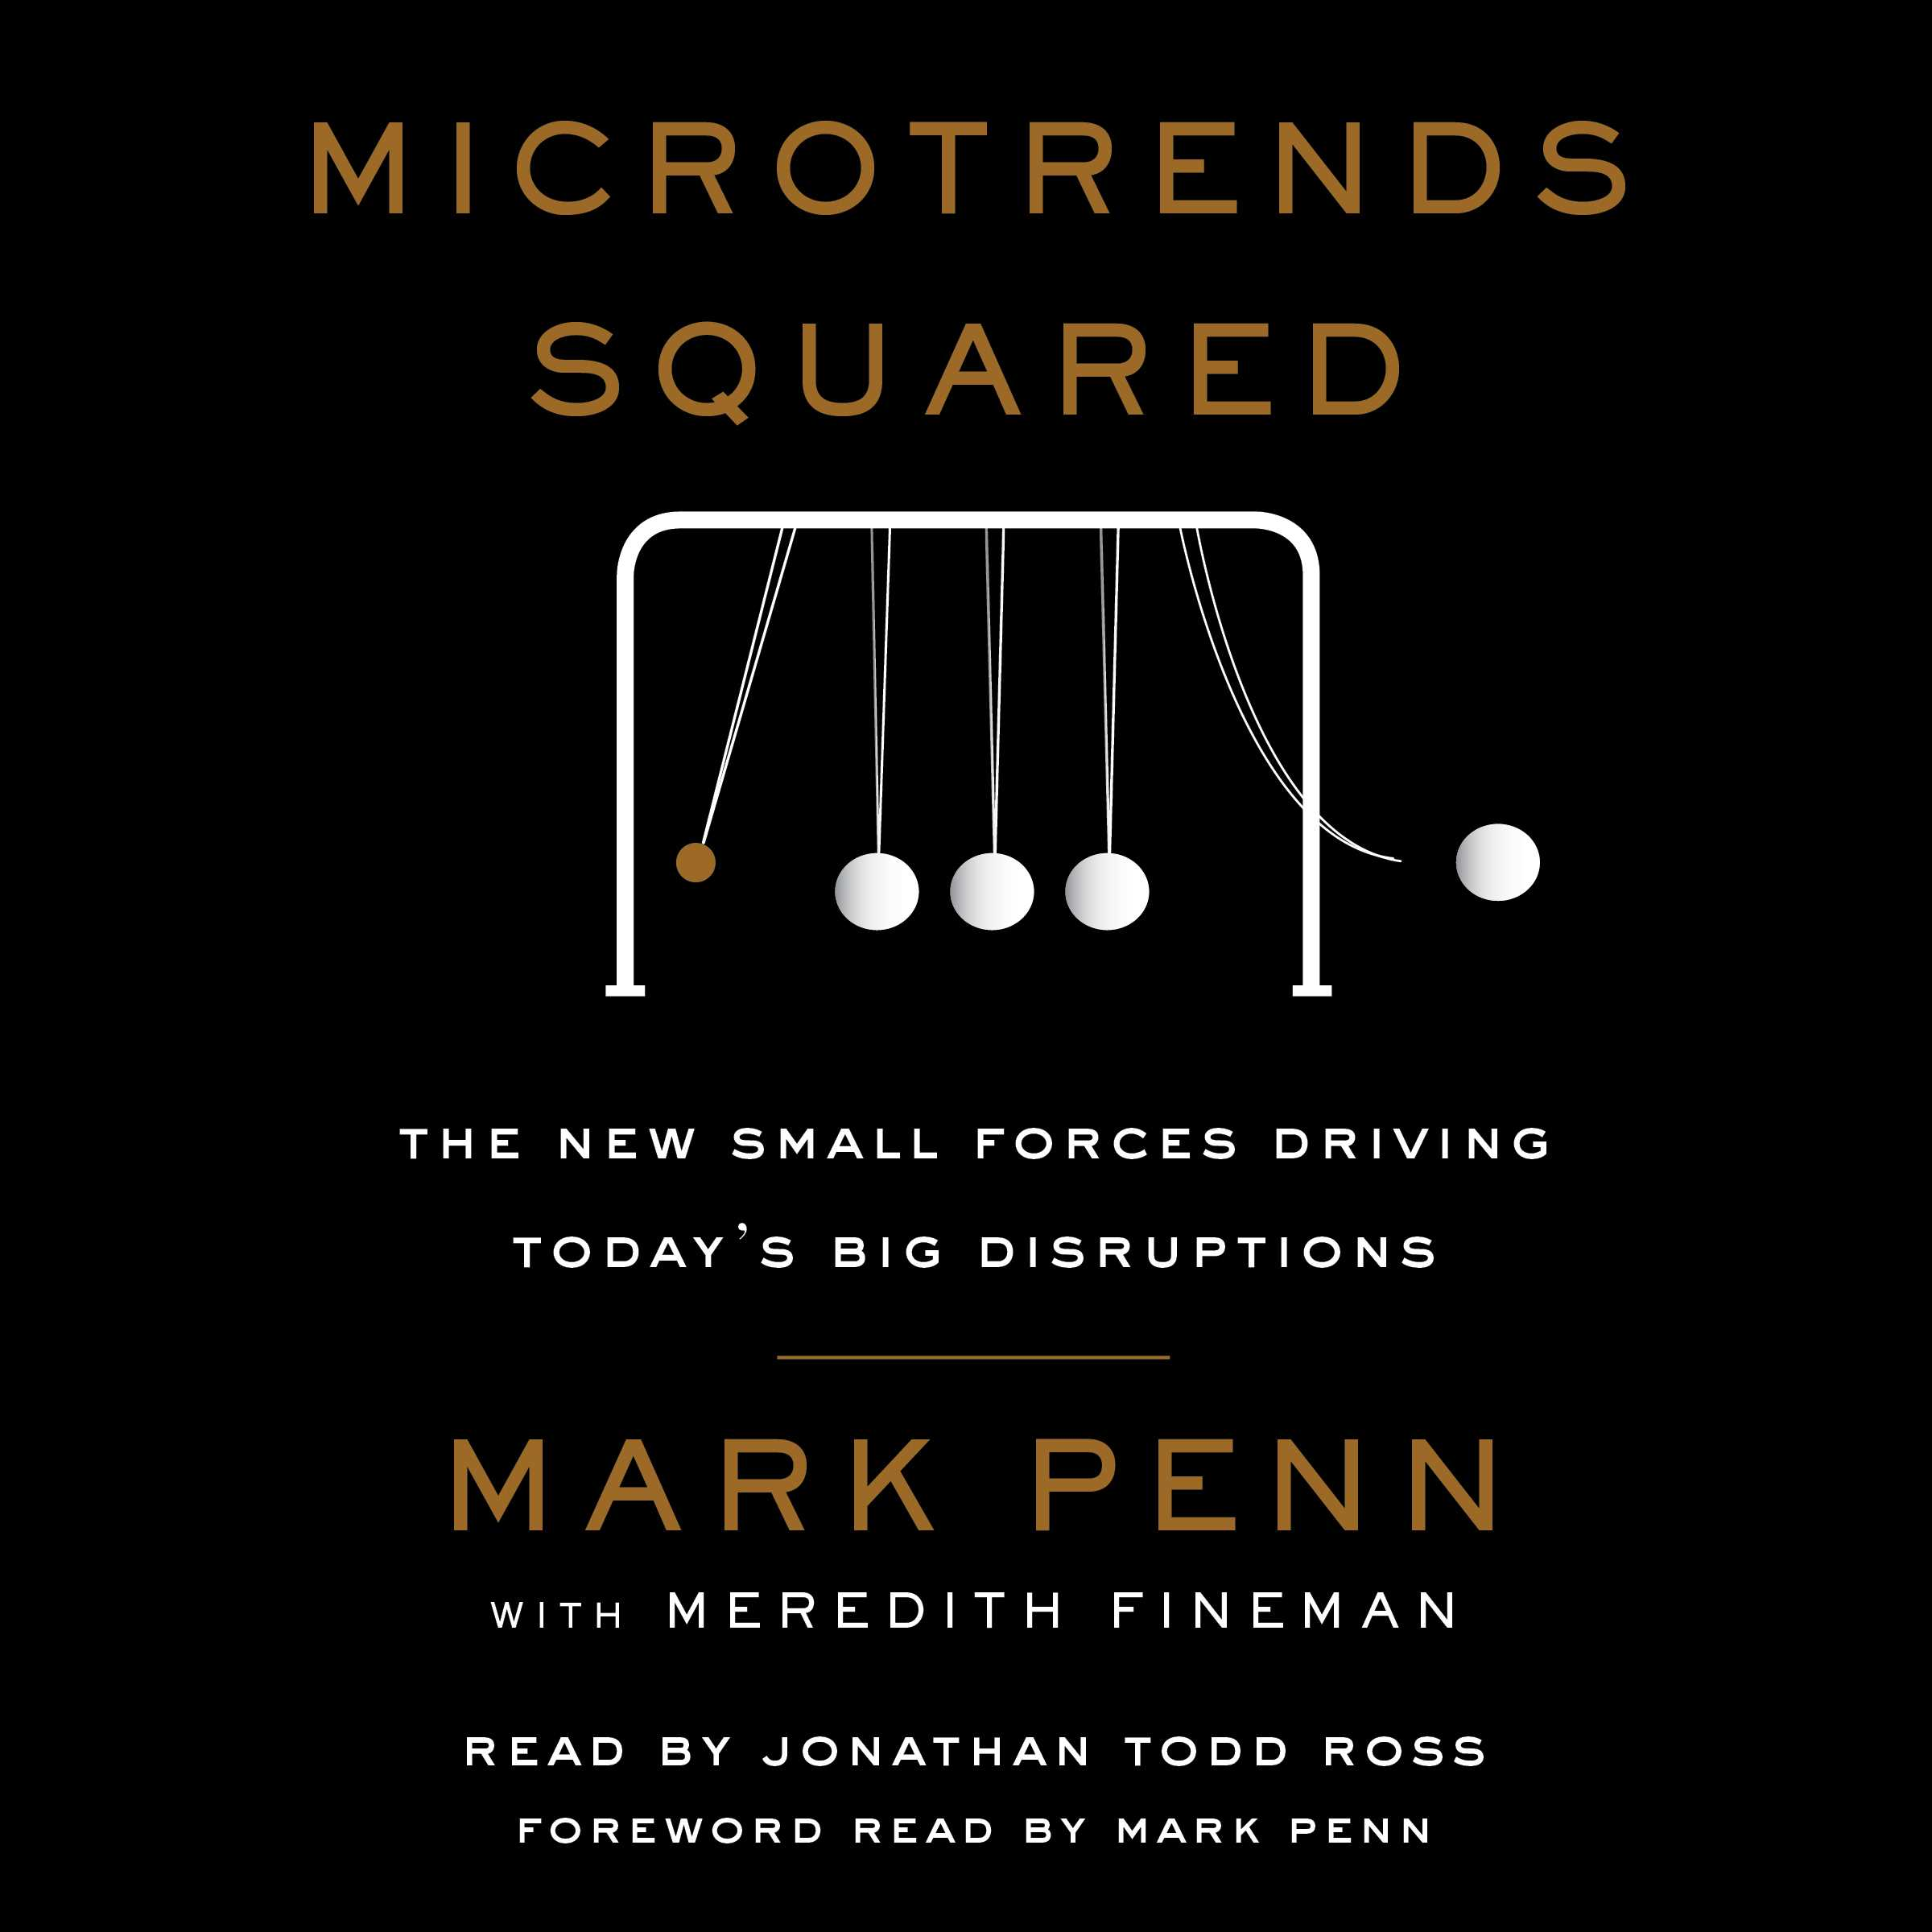 Microtrends squared pdf free download for windows 7